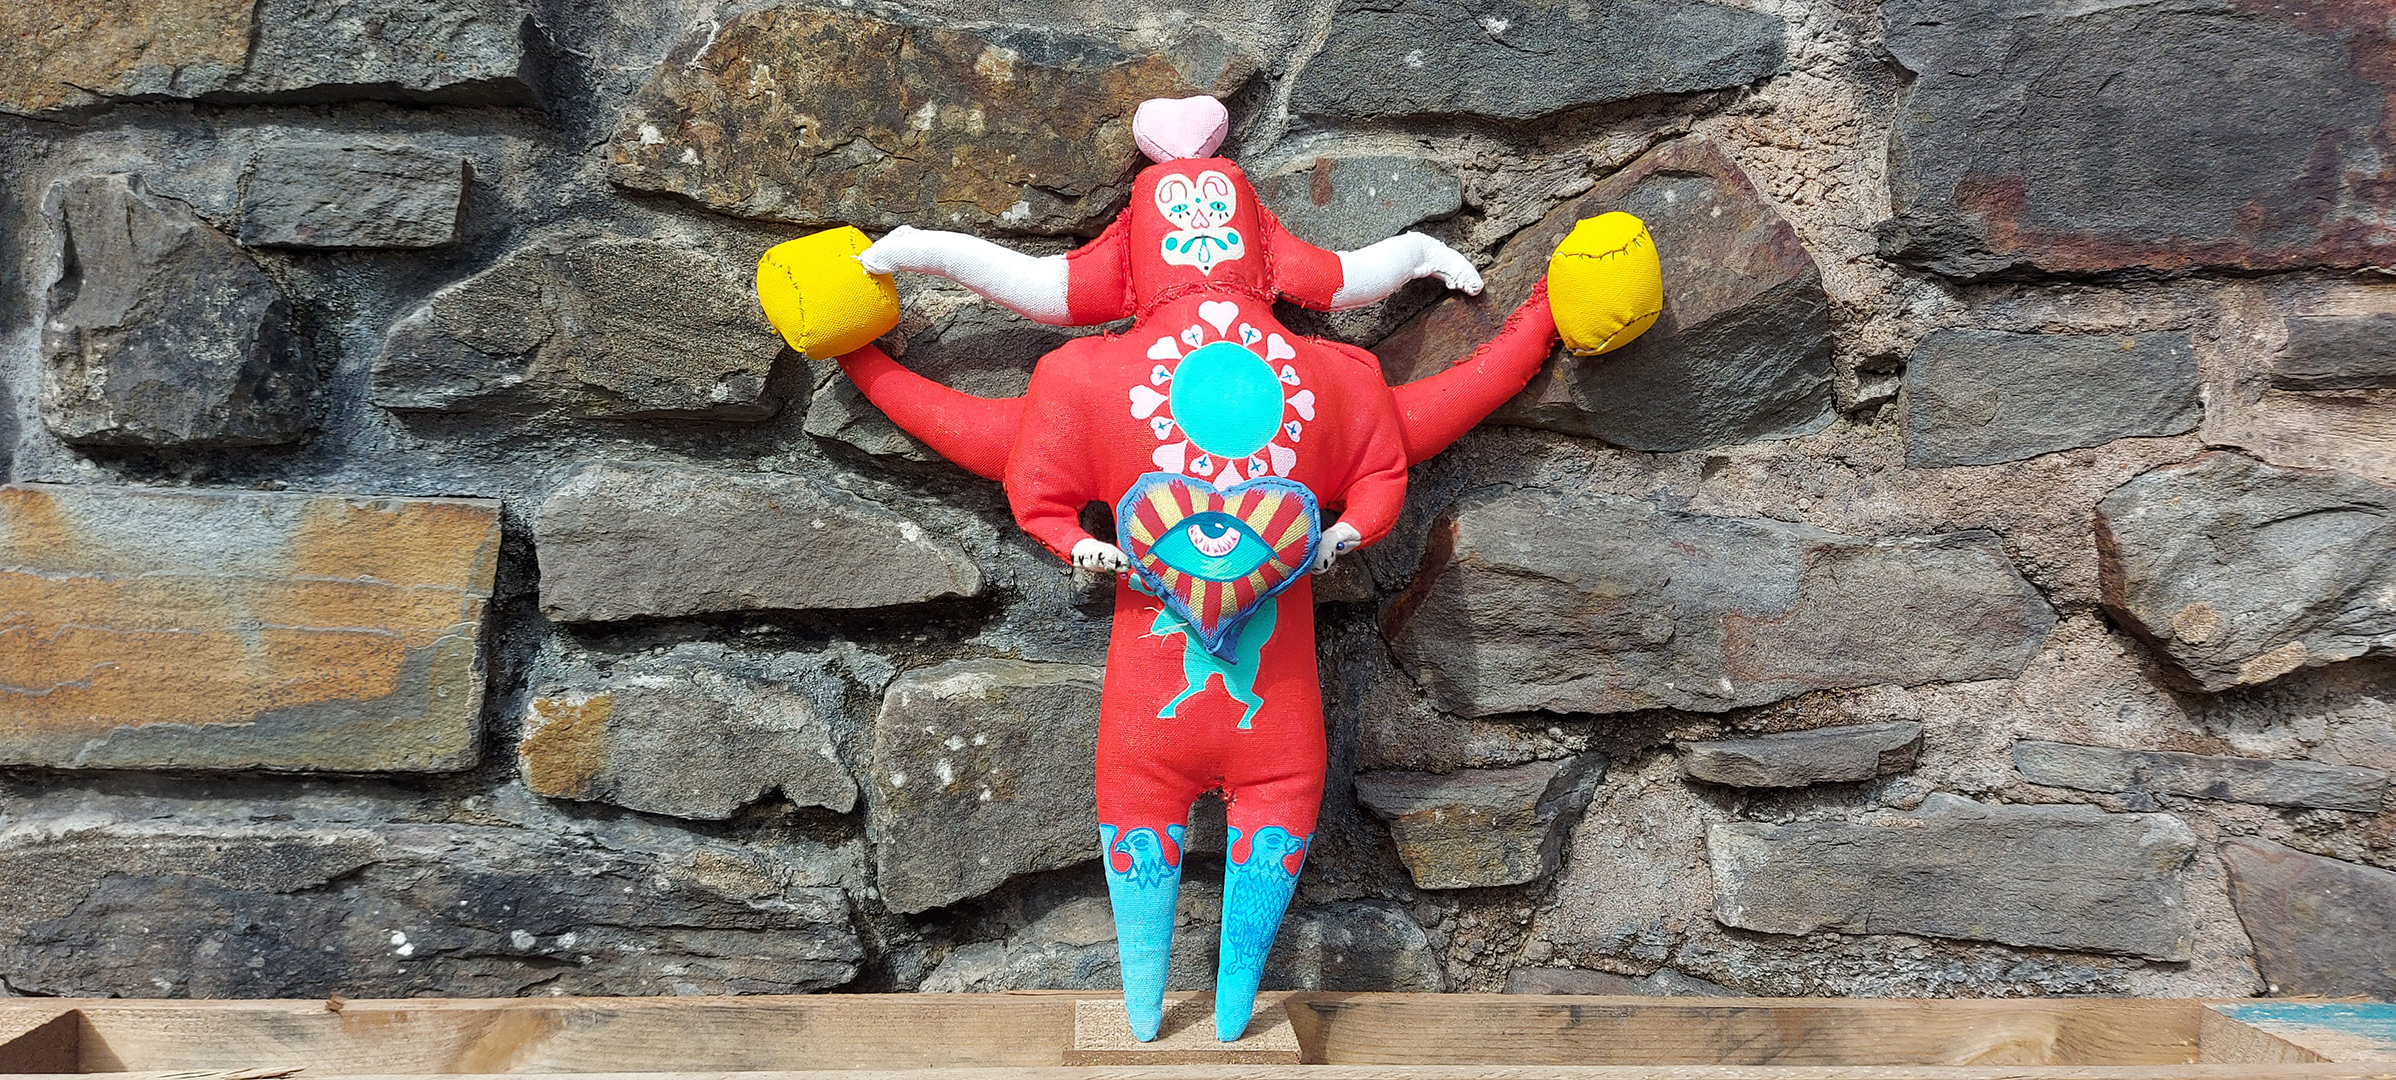 A handmade doll standing in front of a brick wall. The doll is red, with horns and a pink heart on top of its head. Its face is painted with a sad clown style. Its legs have blue birds painted on them, and it holds a heart painted with a blue eye and red and yellow stripes.